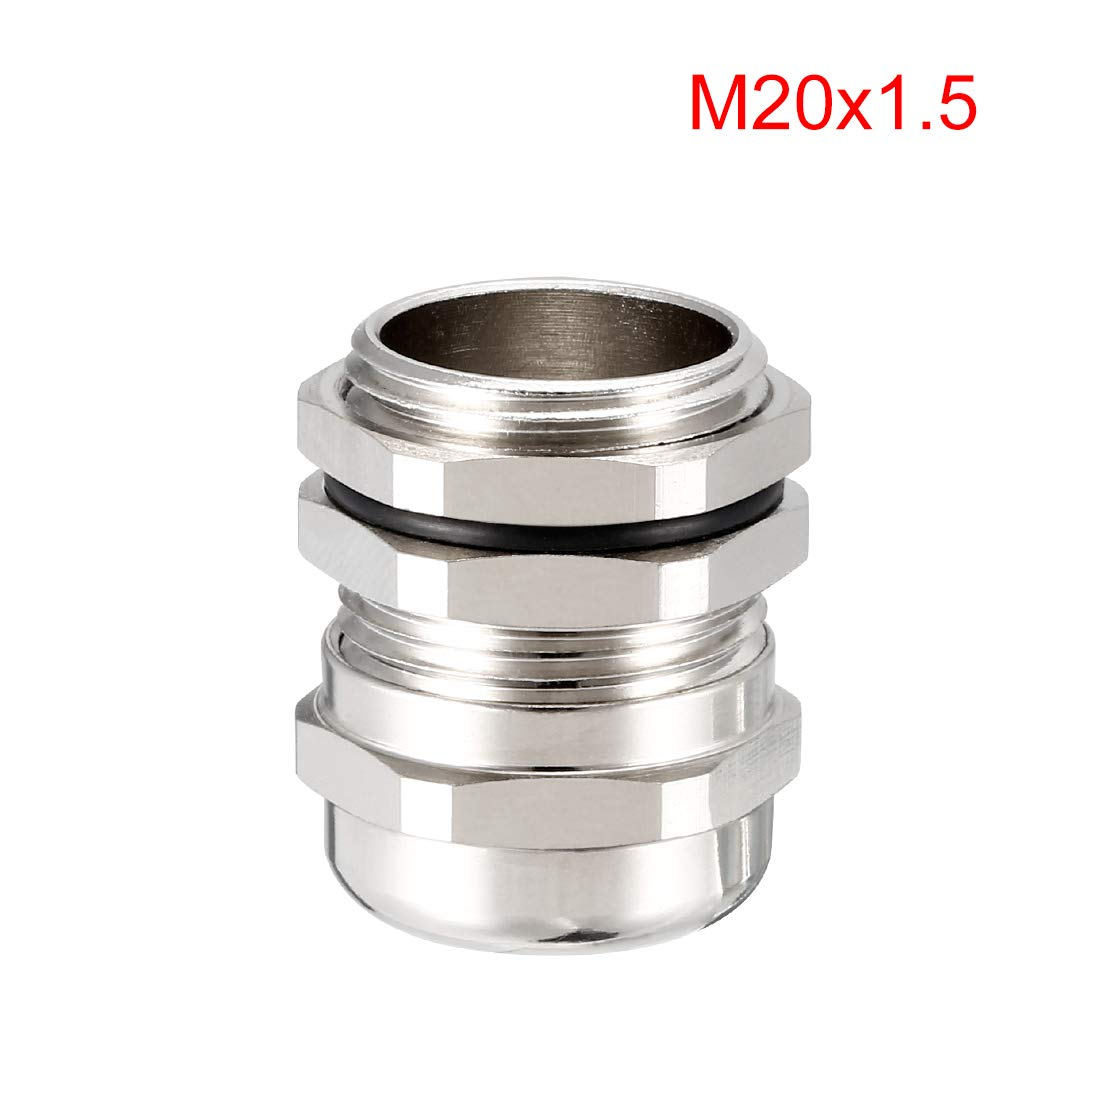 uxcell 3Pcs M25 Cable Gland Metal Waterproof Connector Wire Glands Joints for 13mm-18mm Dia Range